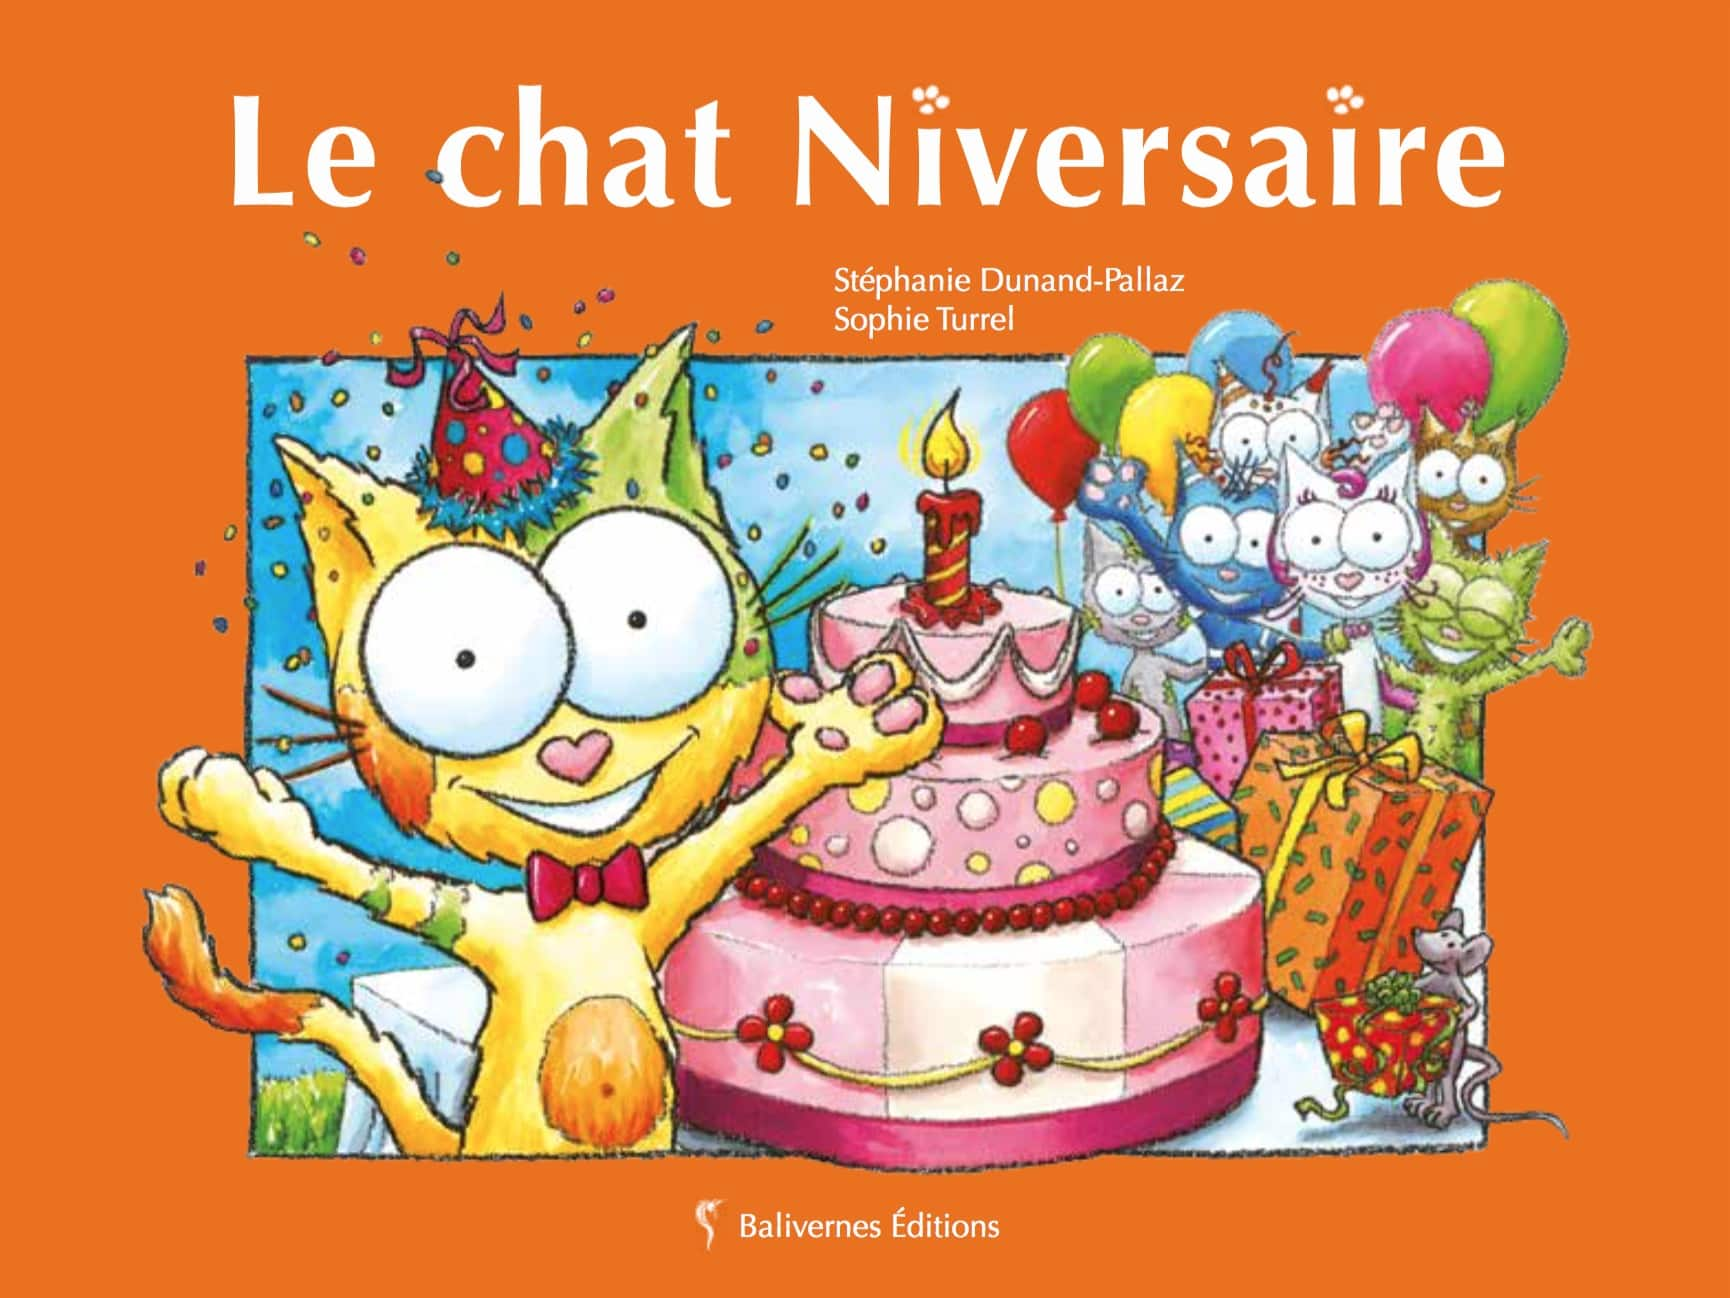 Le Chat Niversaire, album de la collection Les Petits Chats